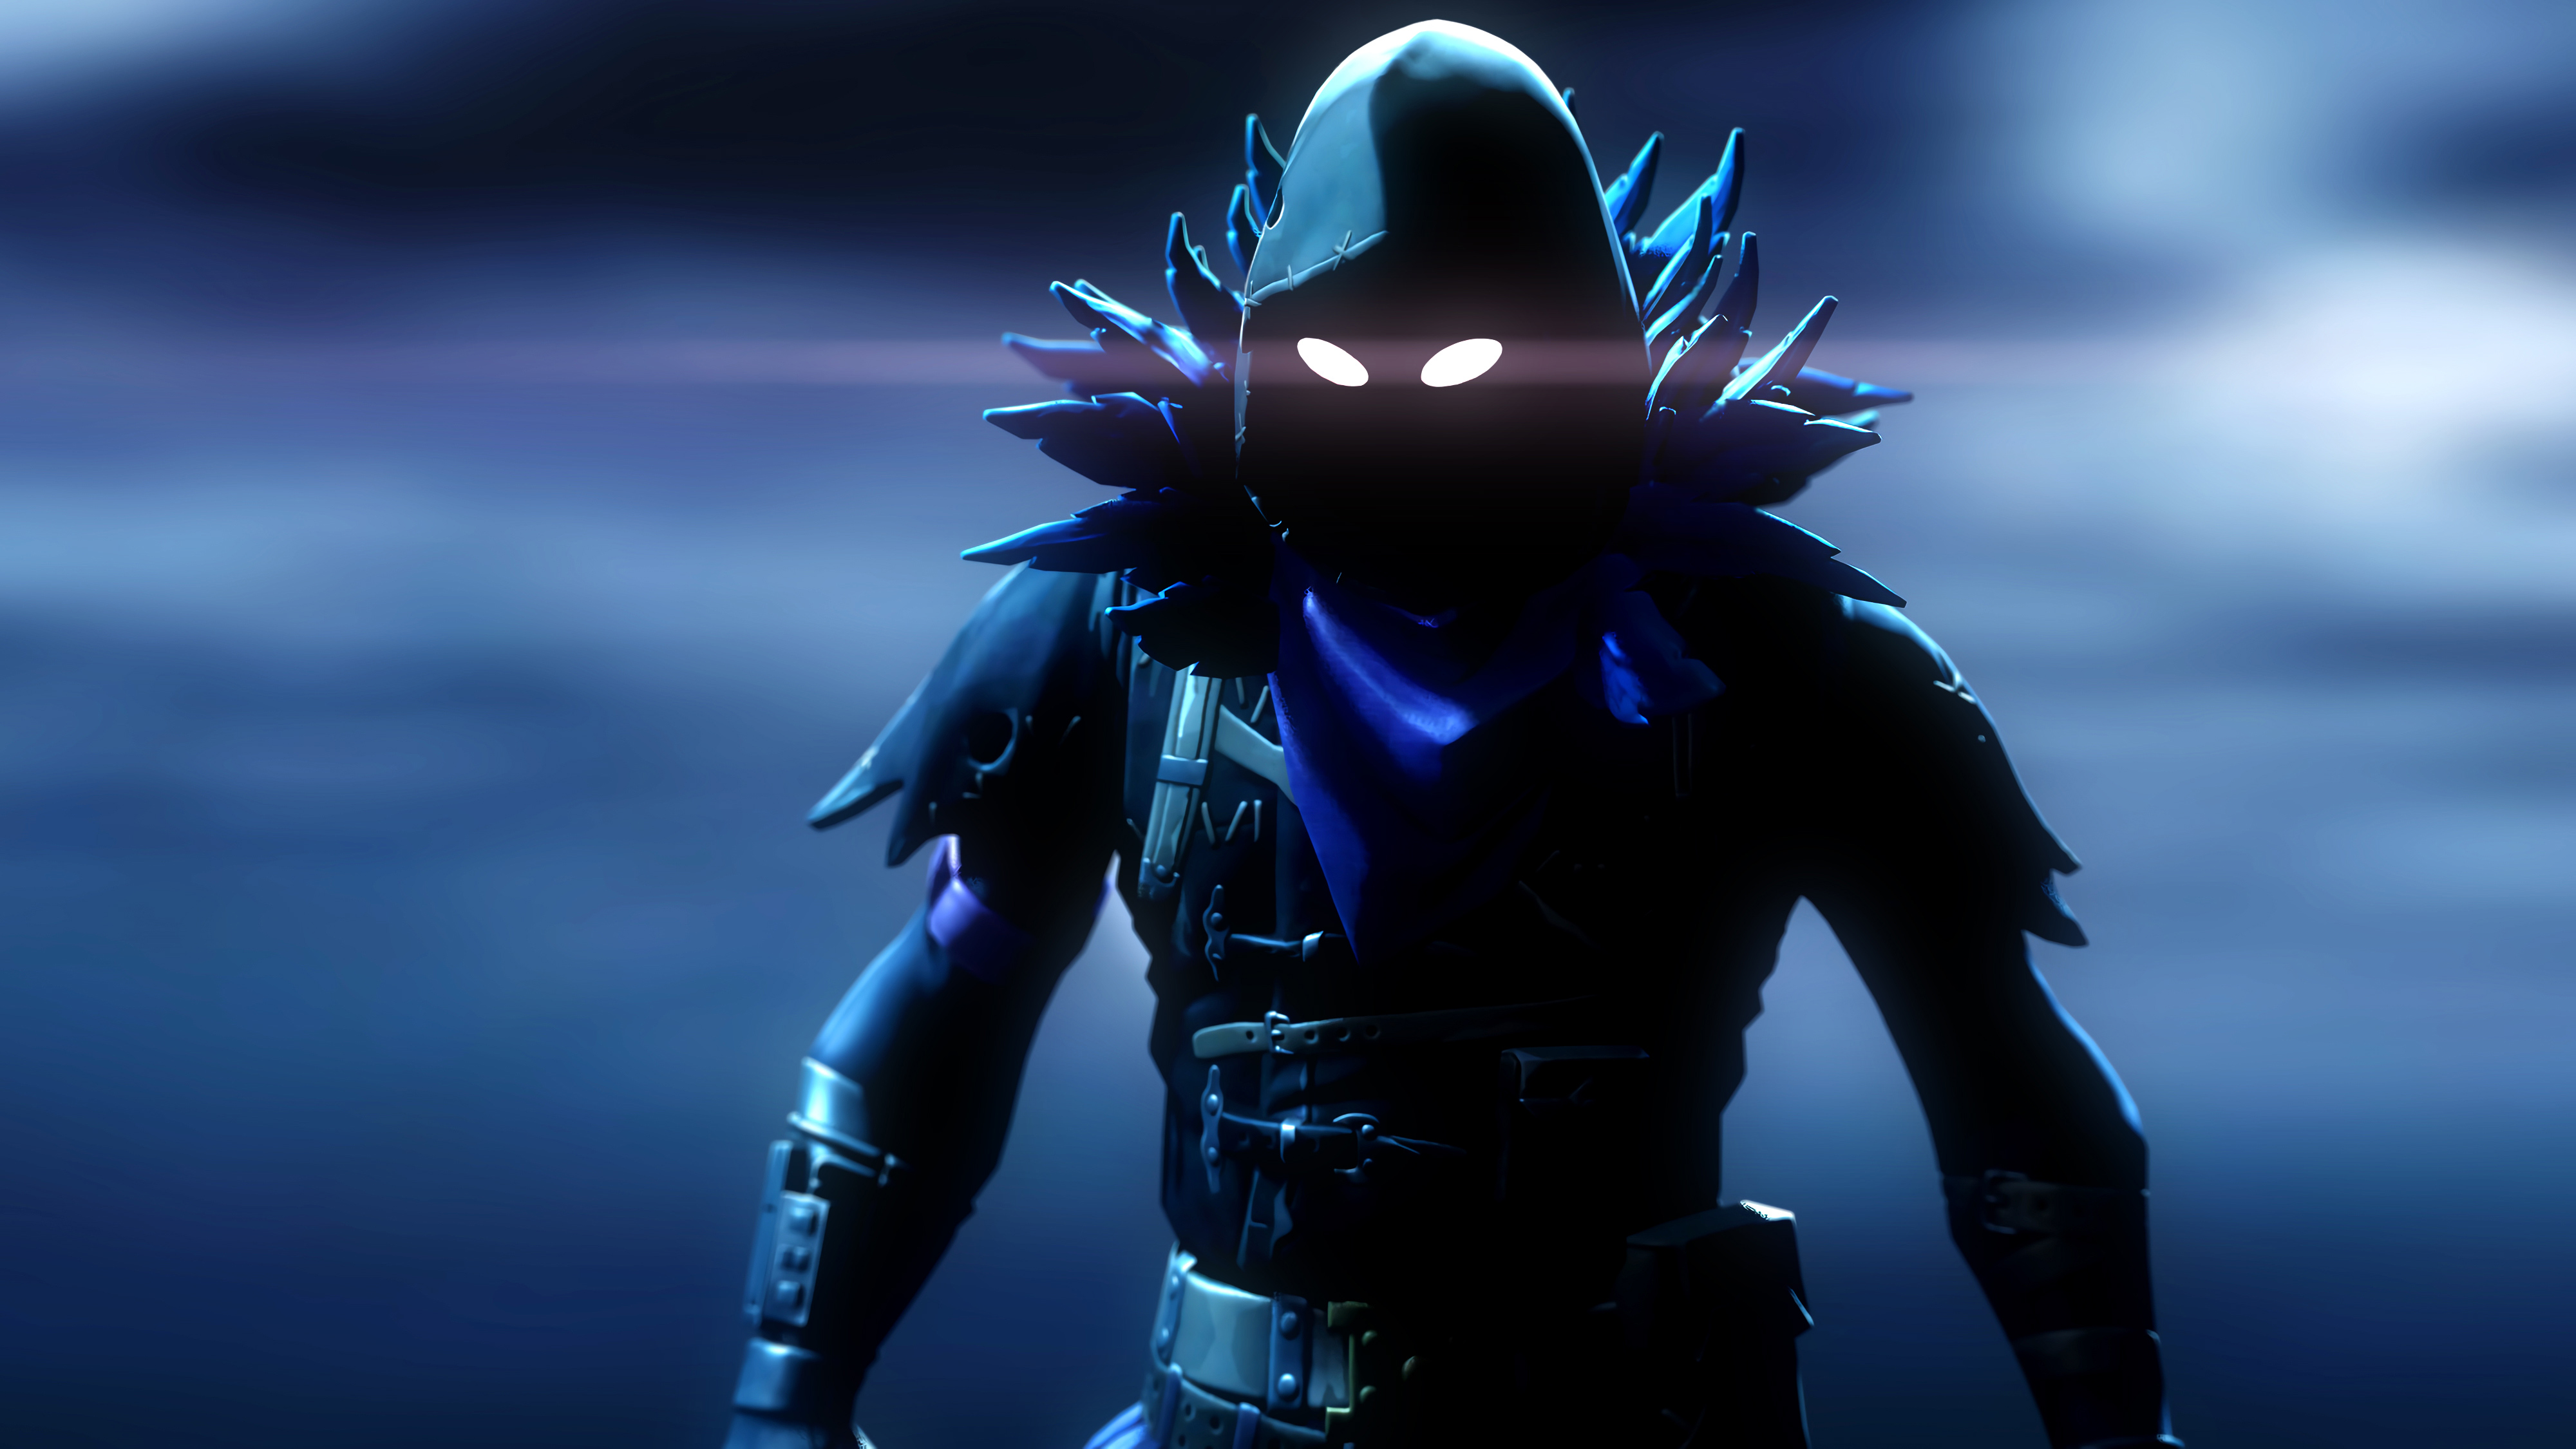 1920x1080 Raven Fortnite Laptop Full Hd 1080p Hd 4k Wallpapers Images Backgrounds Photos And Pictures